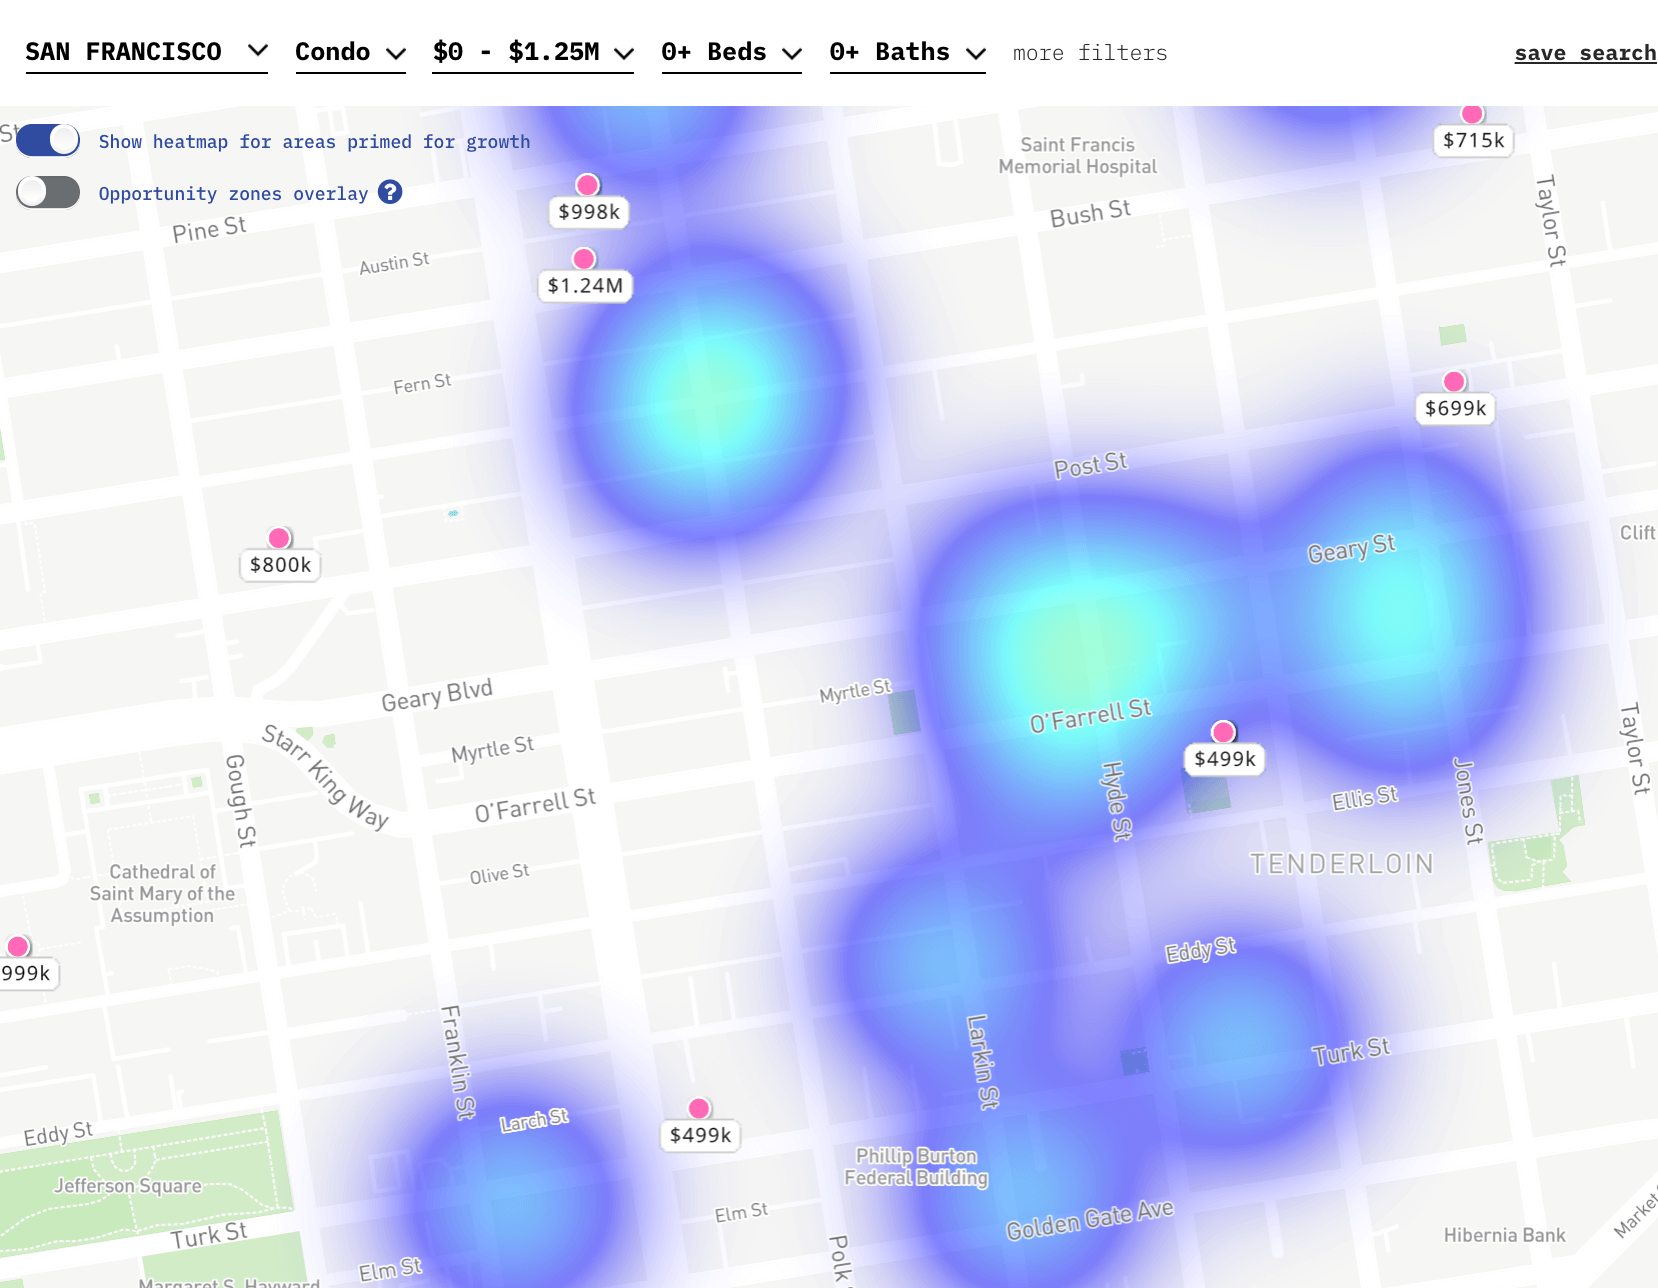 Lofty AI real estate platform in San Francisco with Condo filter turned on